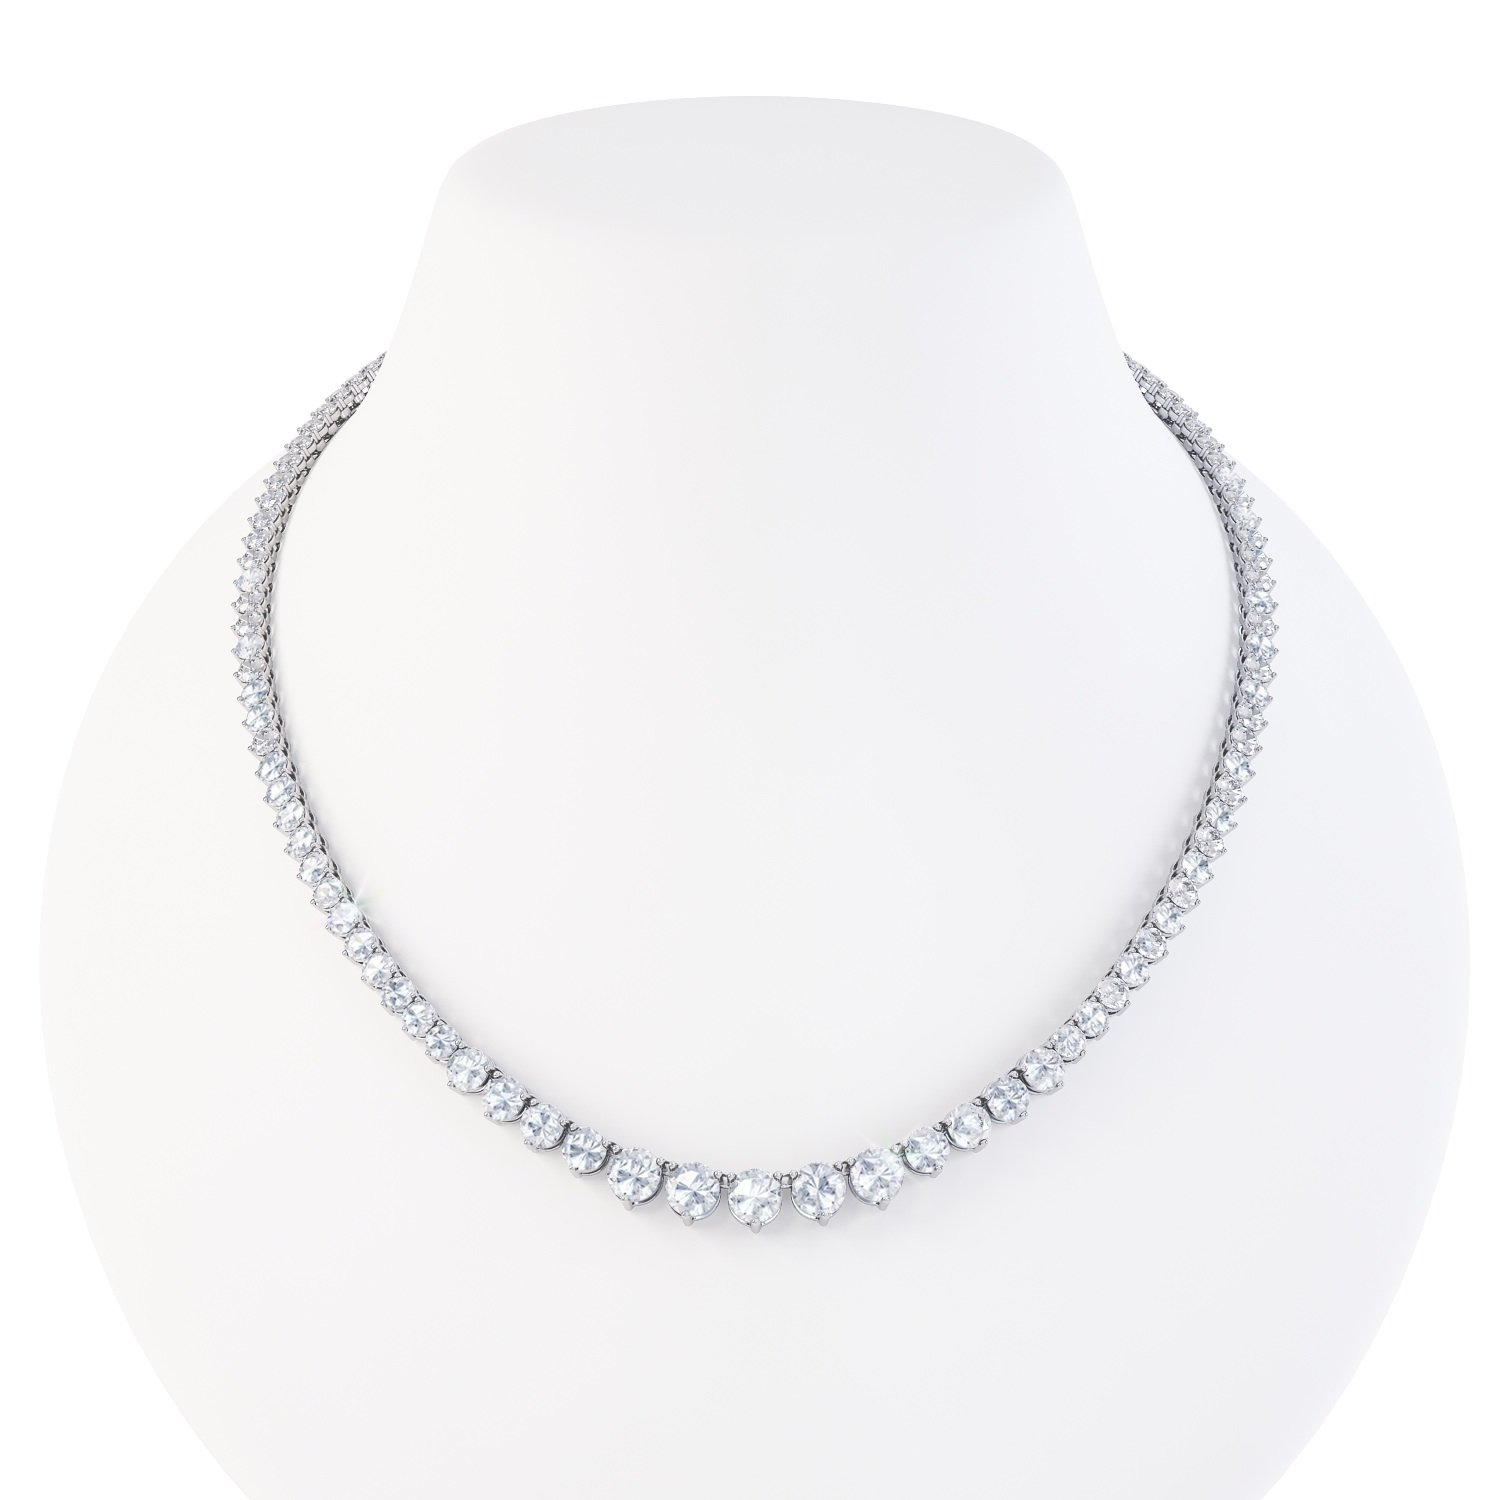 13.ct Diamond 18ct White Gold Eternity Tennis Necklace